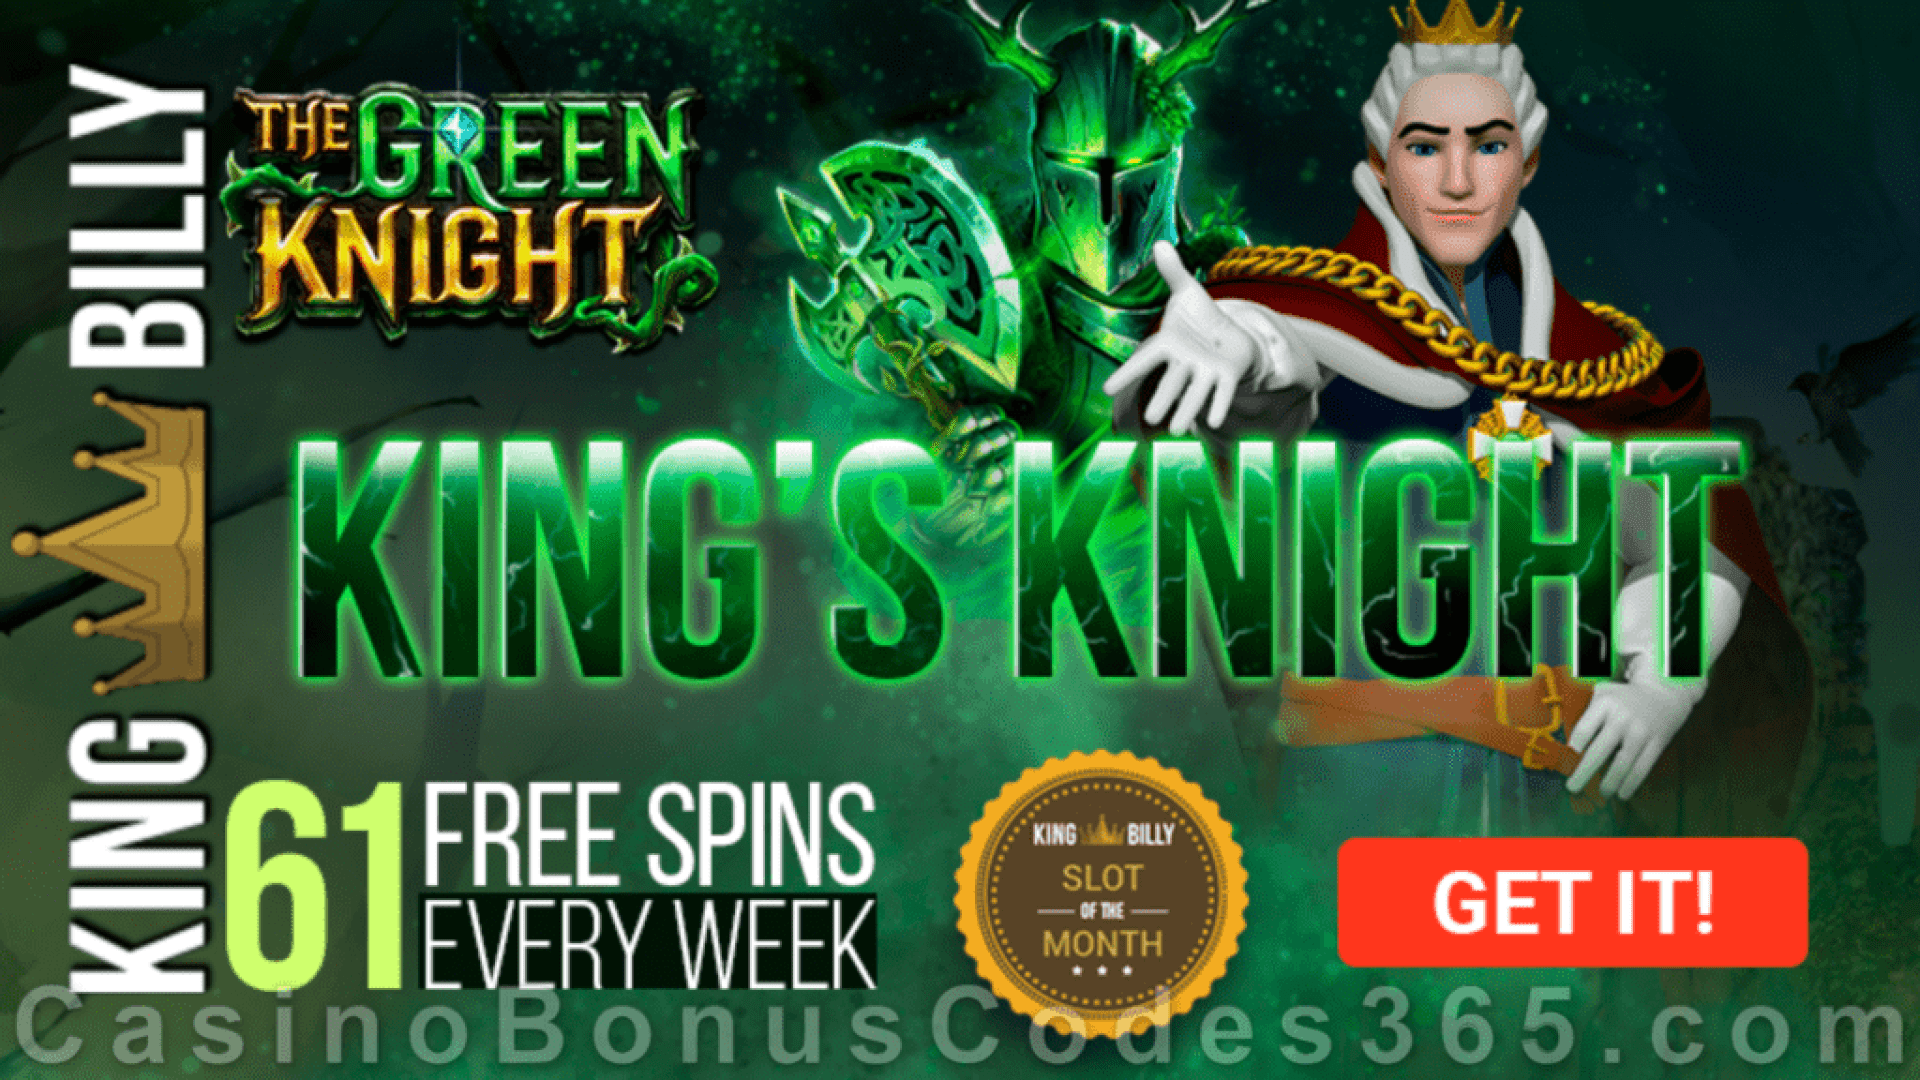 King Billy Casino 61 FREE Spins on Play 'n Go The Green Knight Slot of the Month Promo